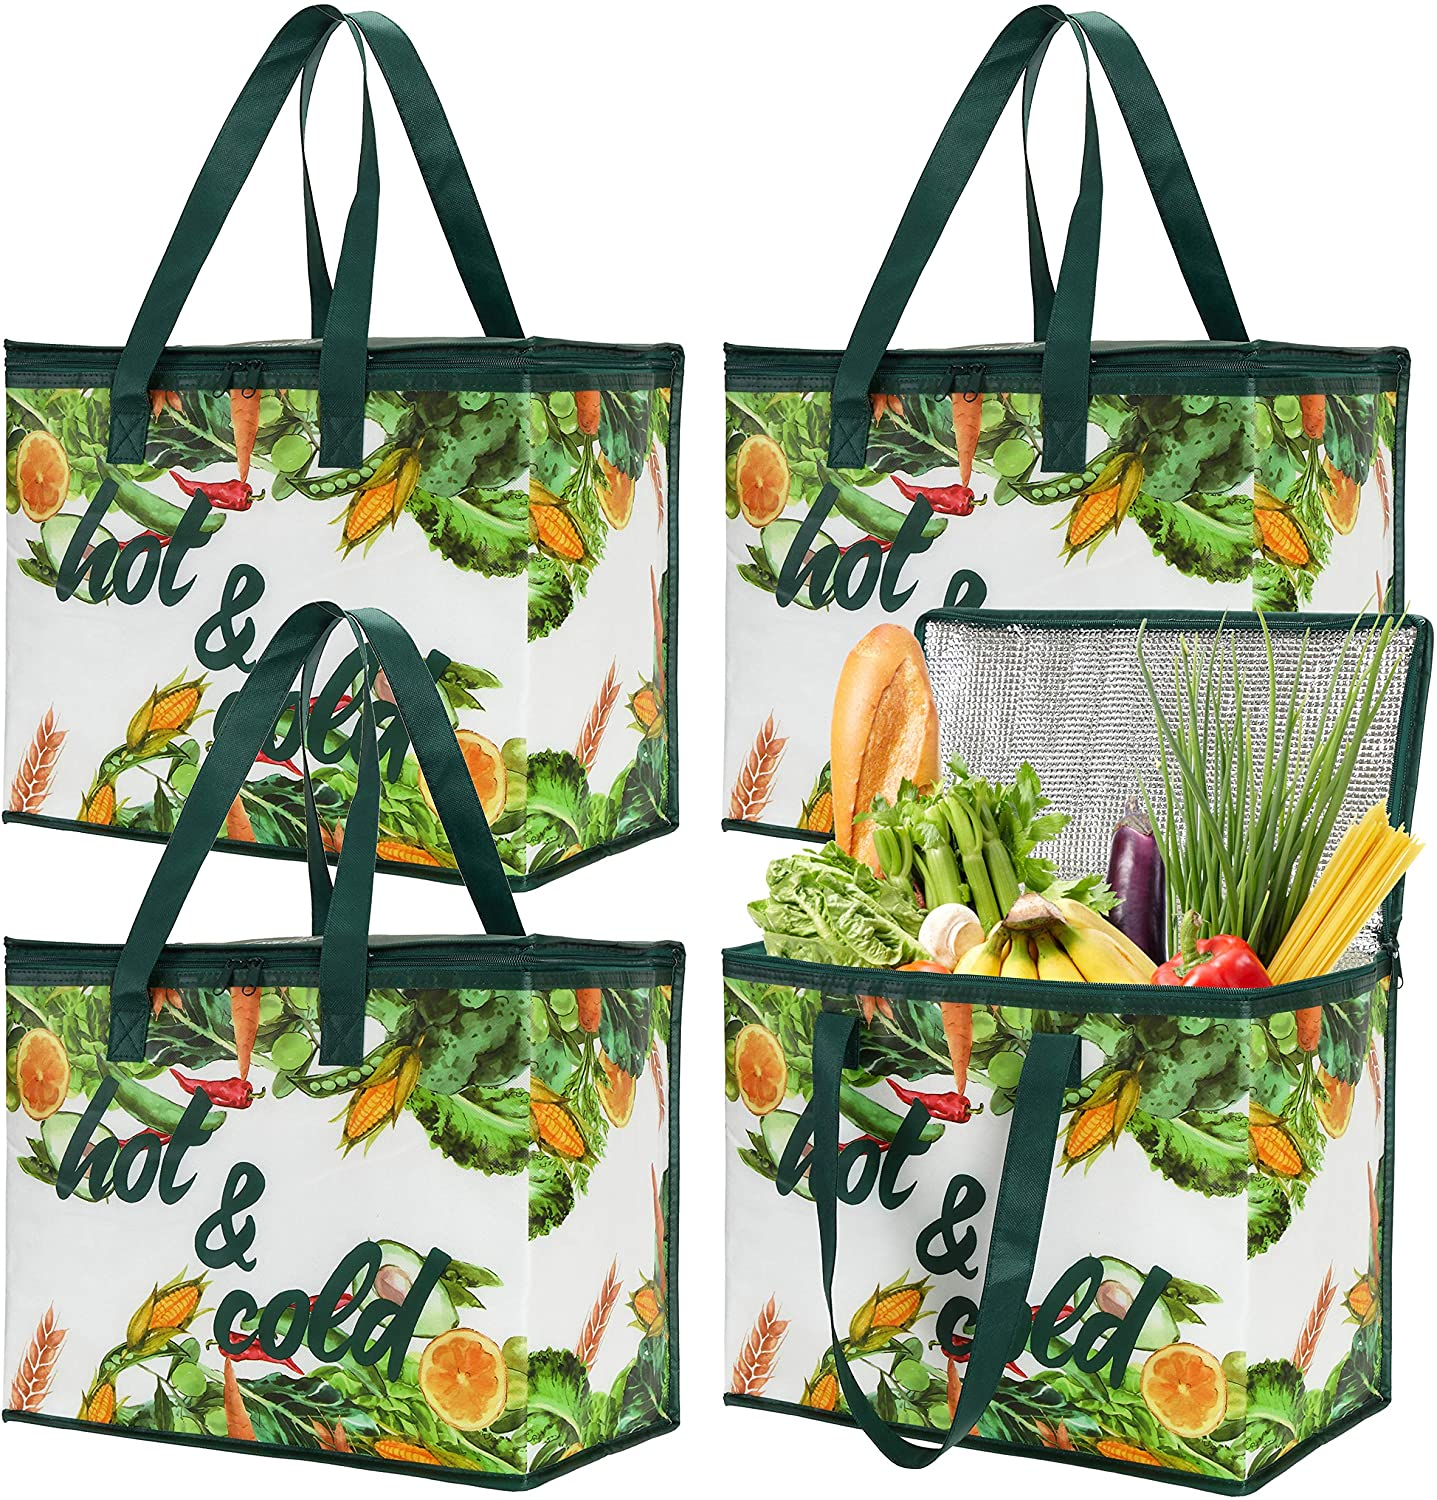 Bekith 4 Pack Insulated Reusable Grocery Bag, X Large Cooler Bags, Shopping Tote with Zippered Top for Hot and Cold Food Transport, Wine Tote, Drinks Carrier, Stands Upright, Collapsible